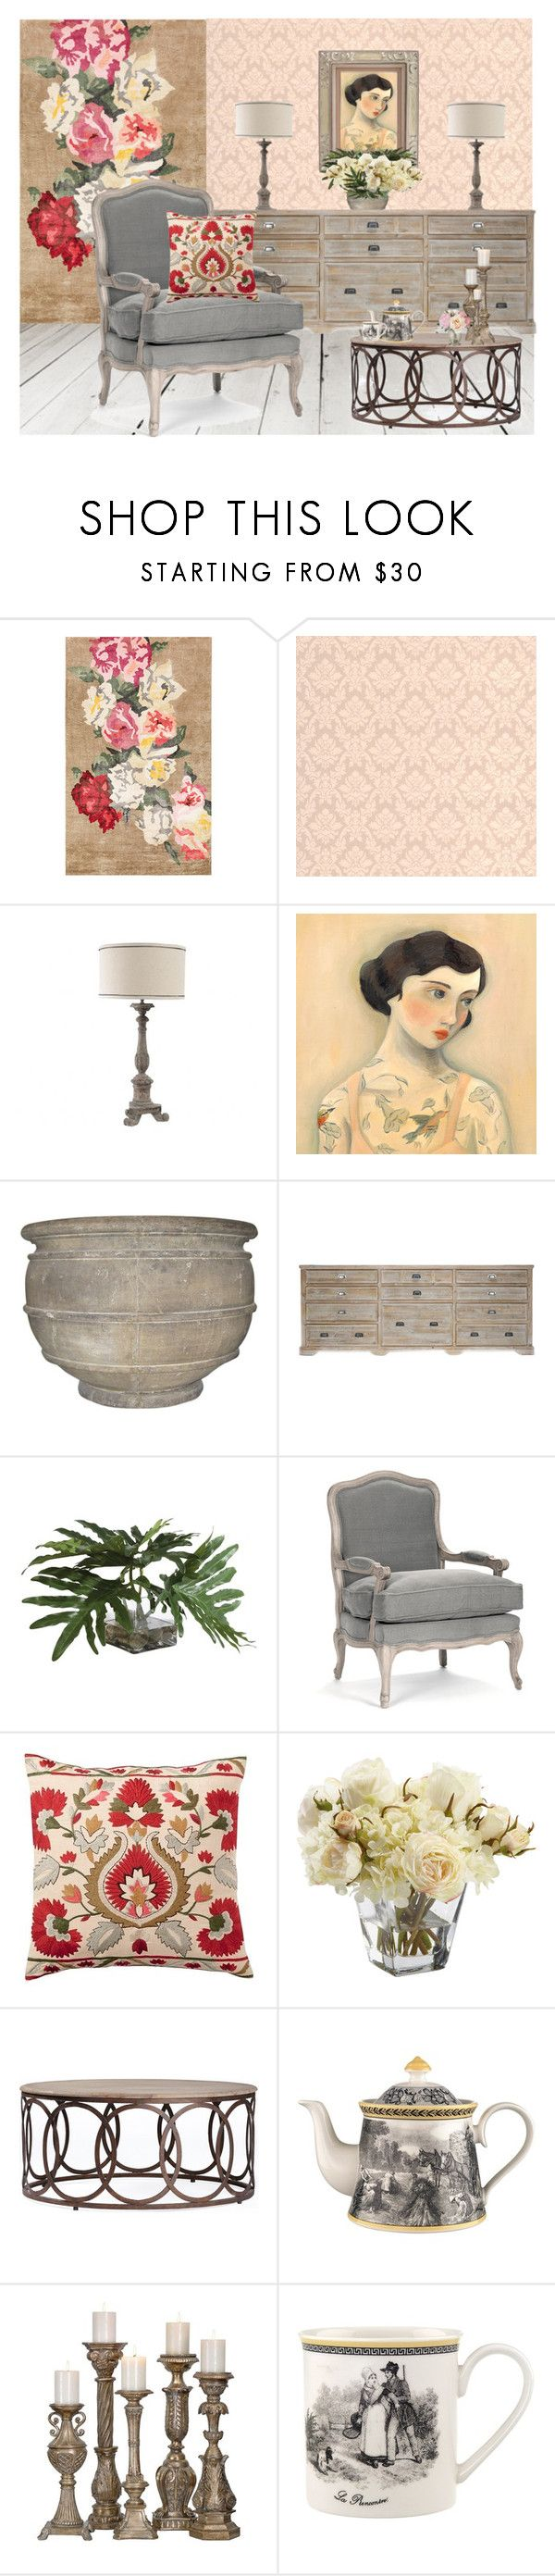 """Oak furniture"" by marielletten ❤ liked on Polyvore featuring interior, interiors, interior design, home, home decor, interior decorating, Designers Guild, Flamant, Ethan Allen and Pottery Barn"